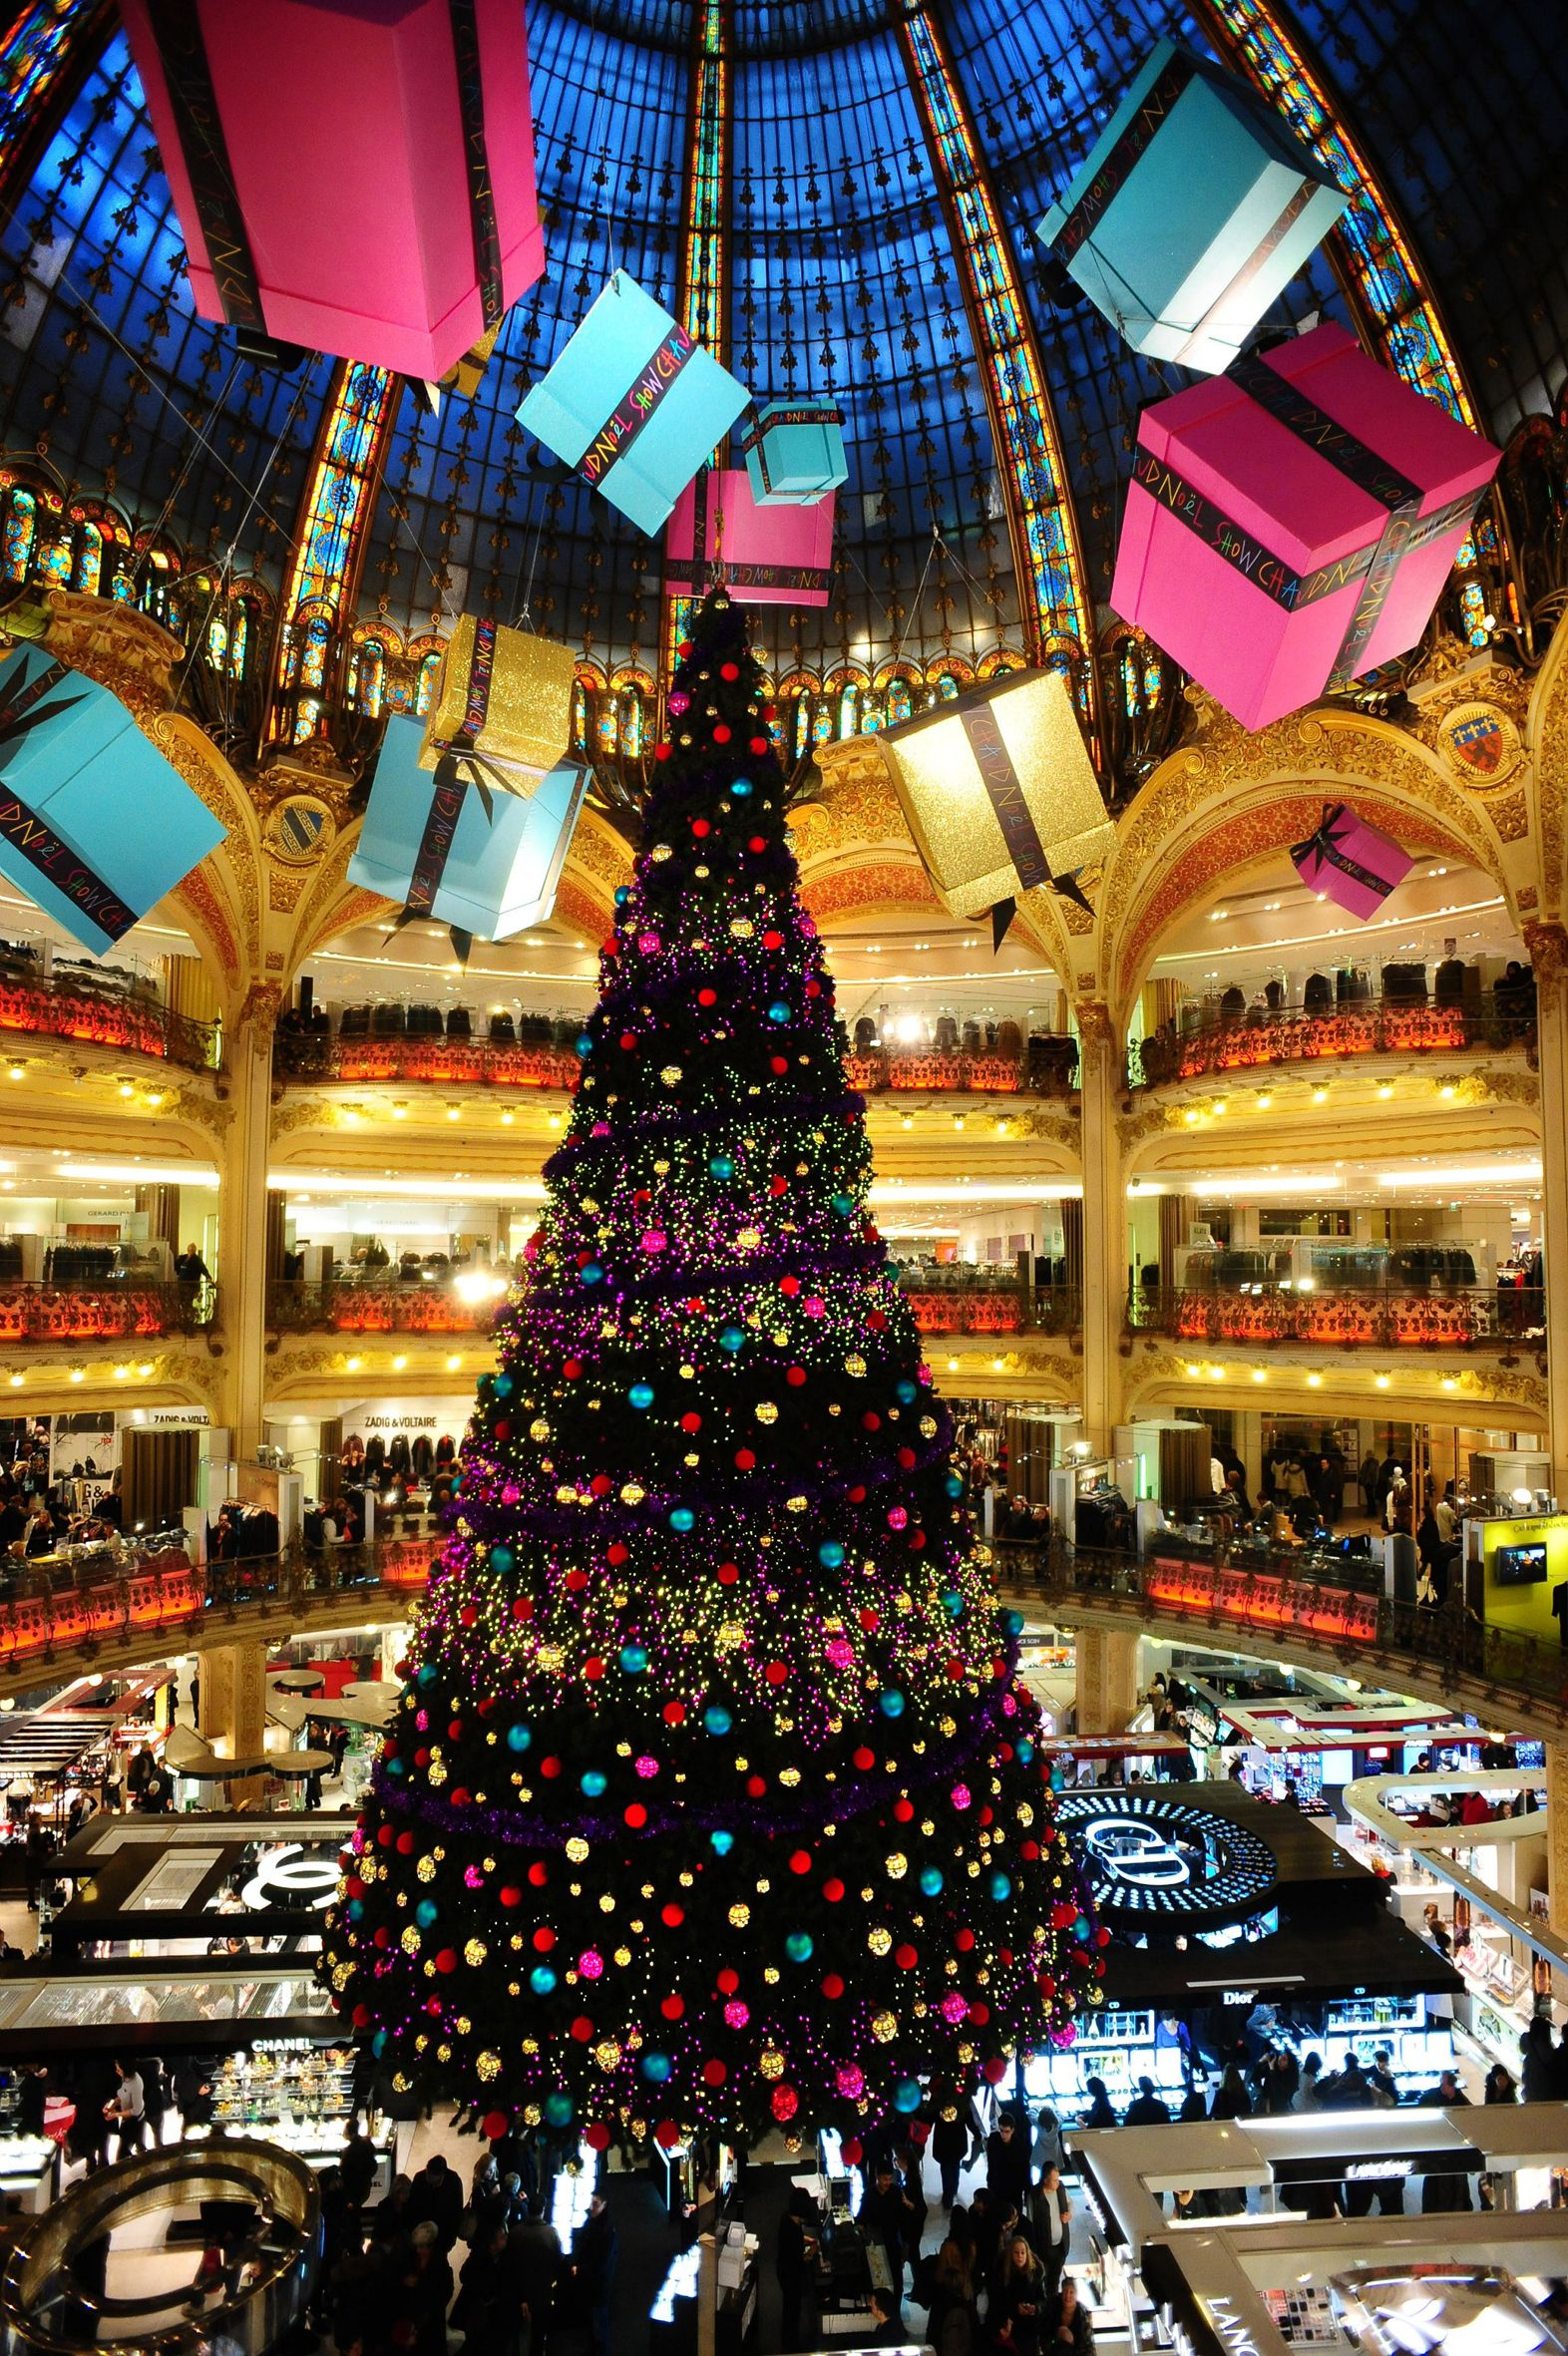 The Day Trips From Paris And Paris Tours Company Christmas In Paris Day Trip From Paris Holidays Around The World